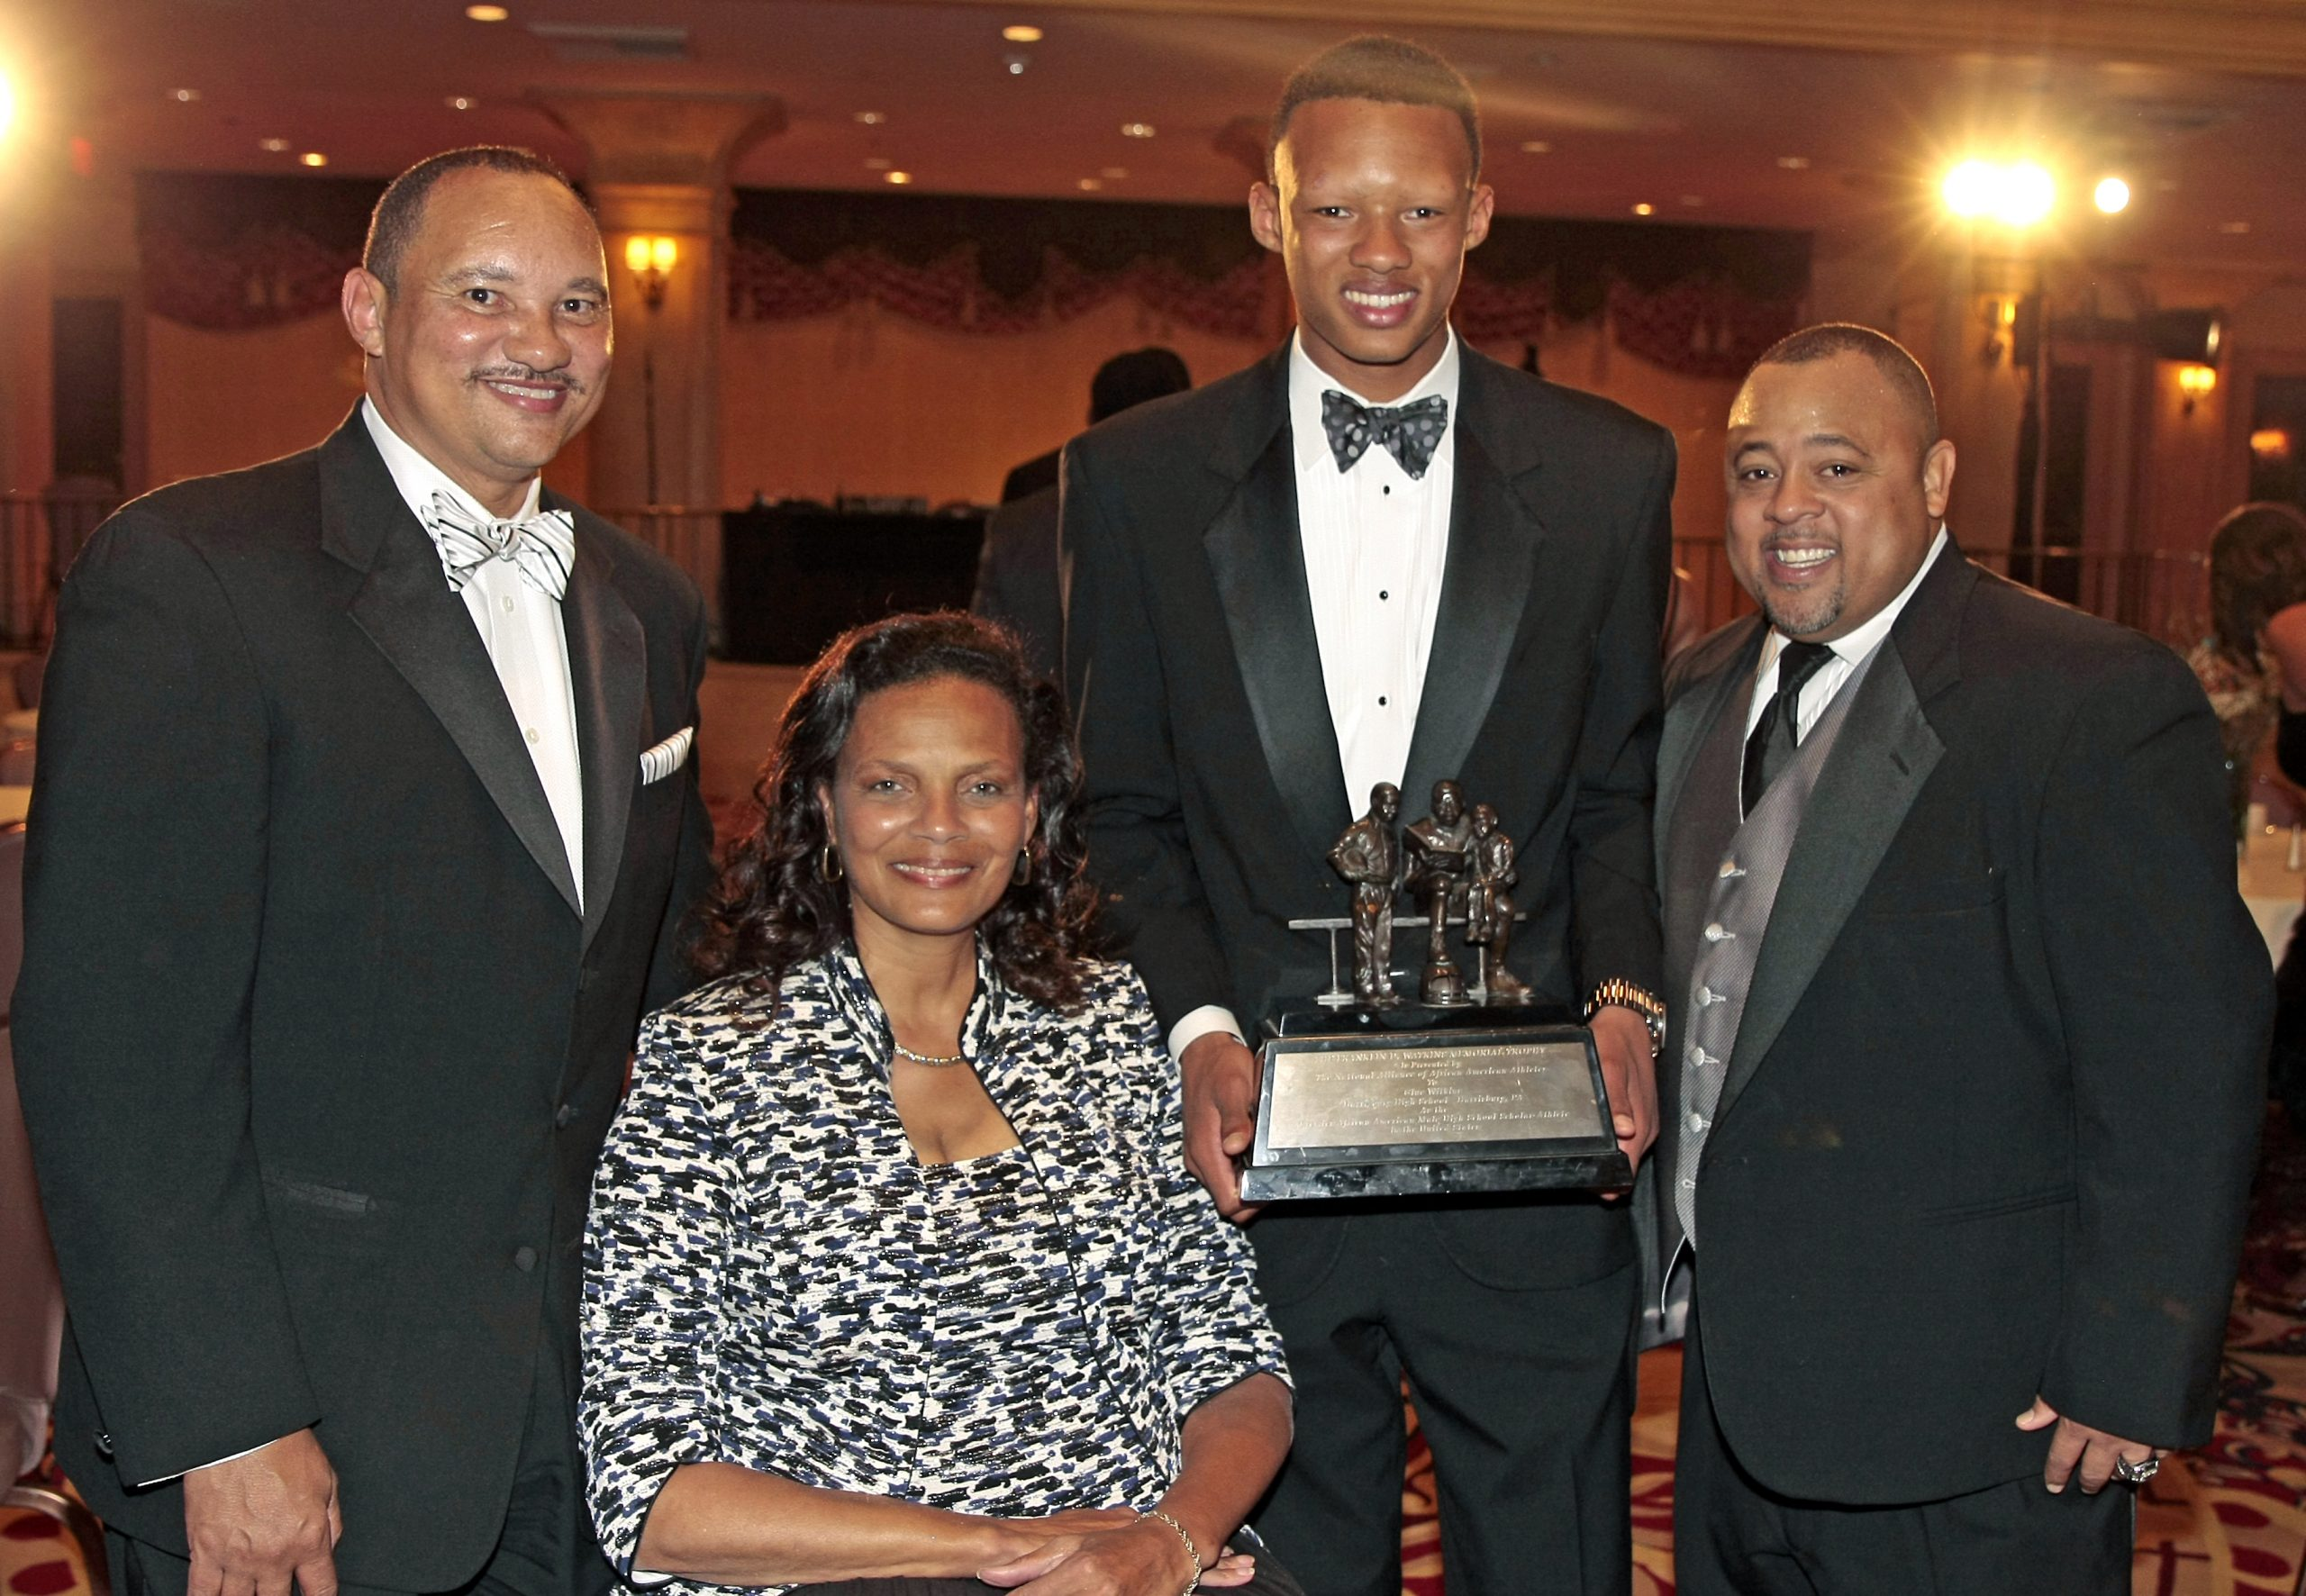 Joshua Dobbs (second right), one of the most talented high school quarterbacks in the country, is the recipient of the 2013 Franklin D. Memorial Watkins Award.